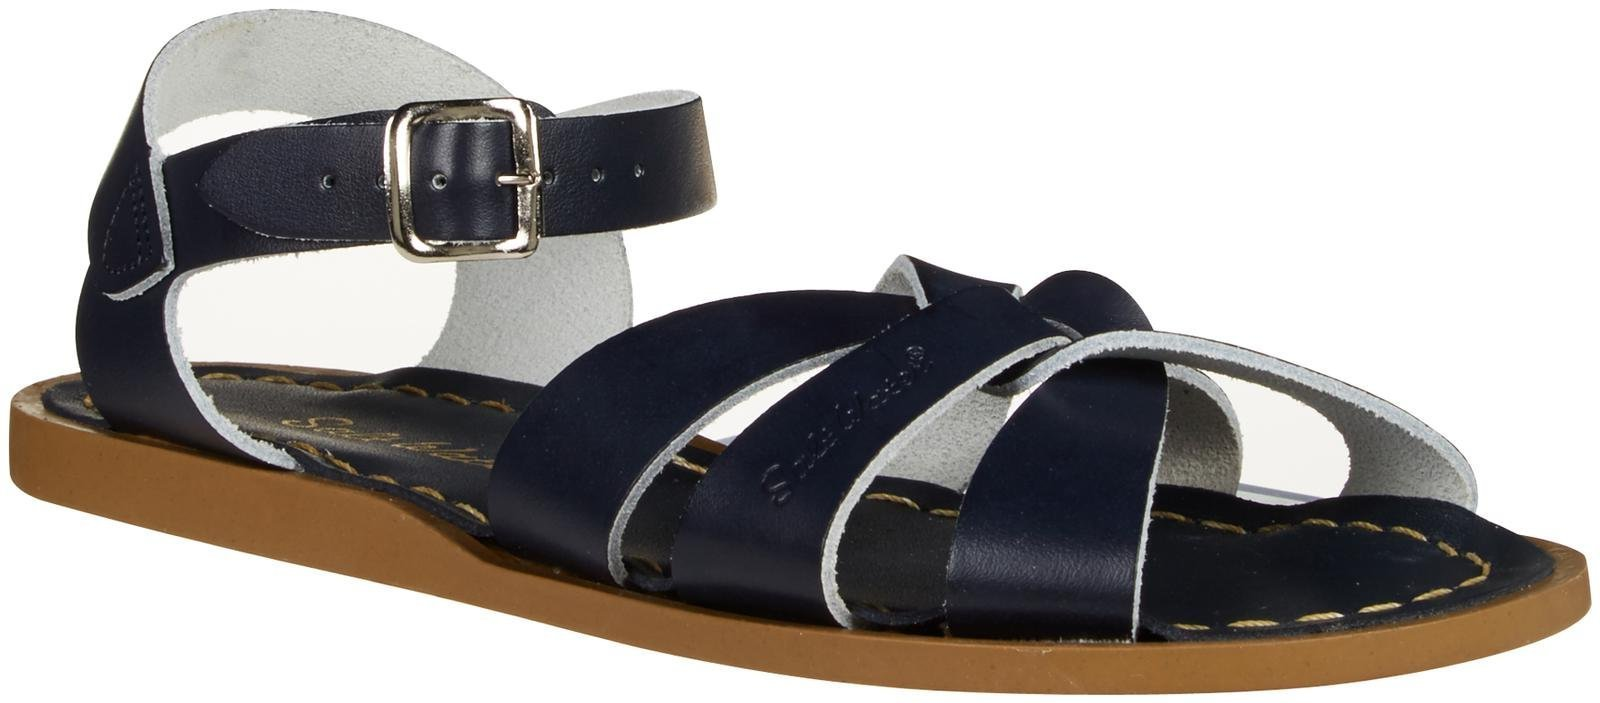 Salt Water Sandals by Hoy Shoe Original Sandal (Toddler/Little Kid/Big Kid/Women's), Navy, 7 M US Big Kid